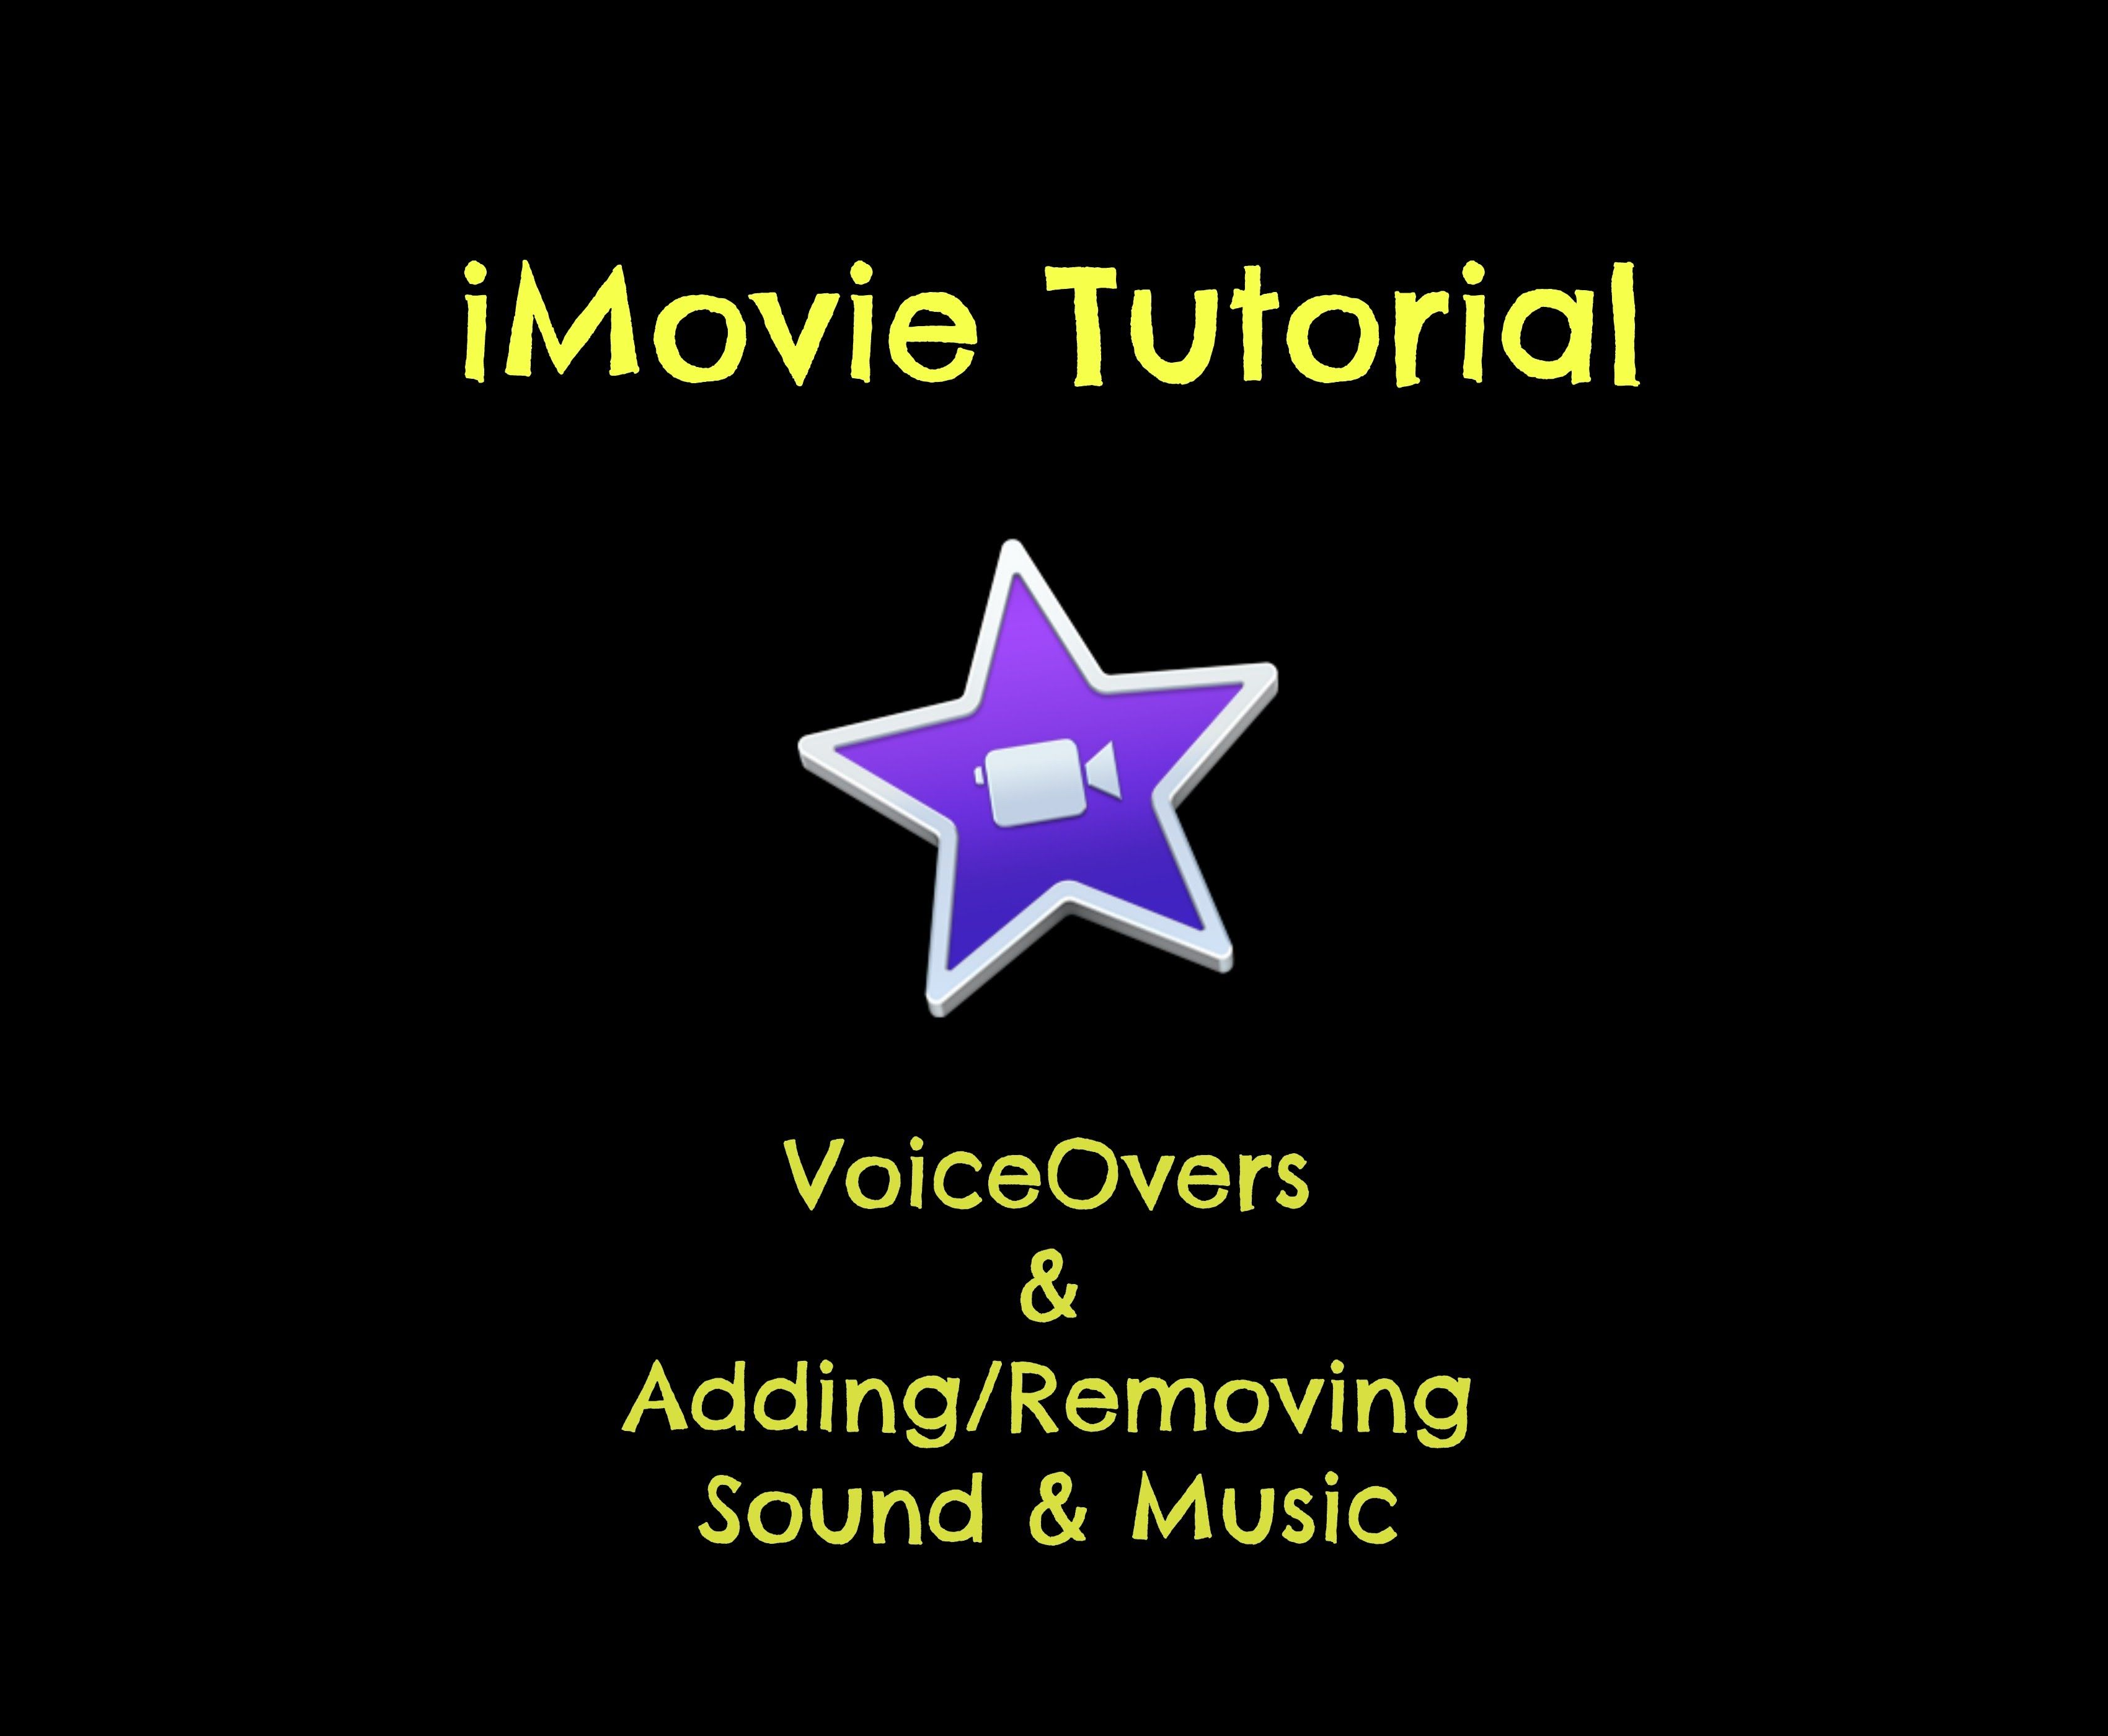 Imovie video tutorial creating a voiceover dropping